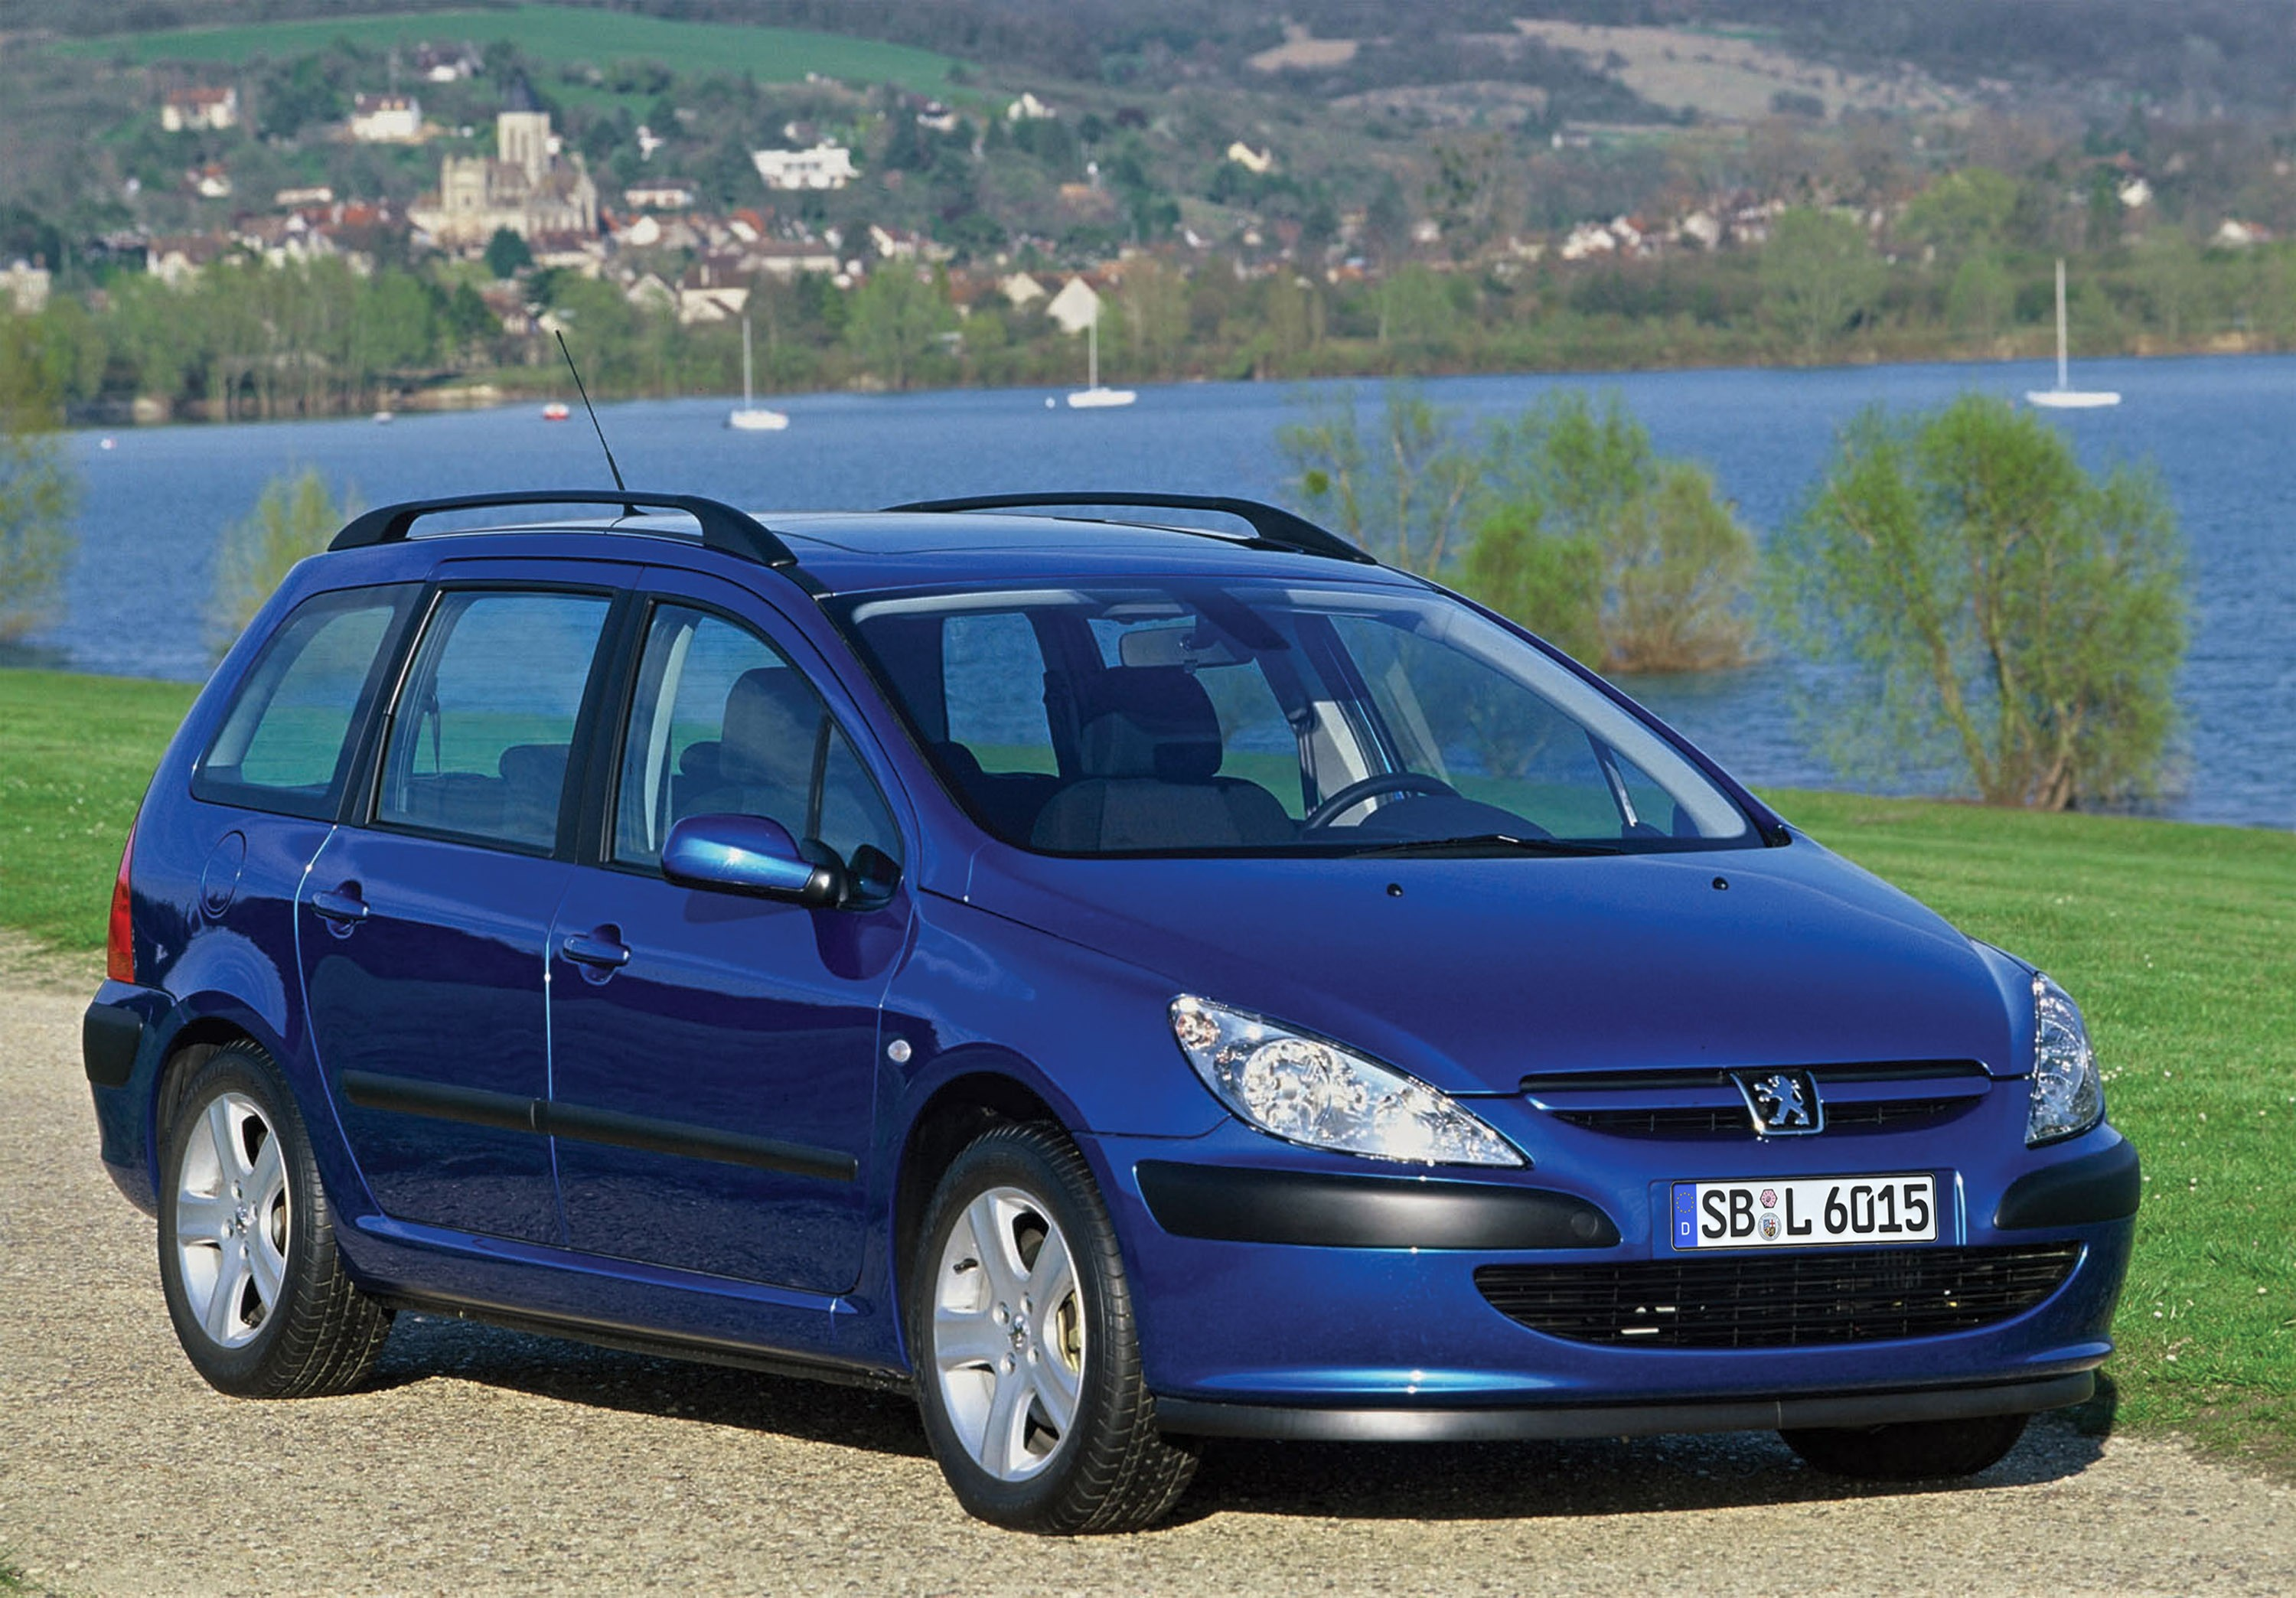 peugeot 307 break specs - 2002, 2003, 2004, 2005 - autoevolution